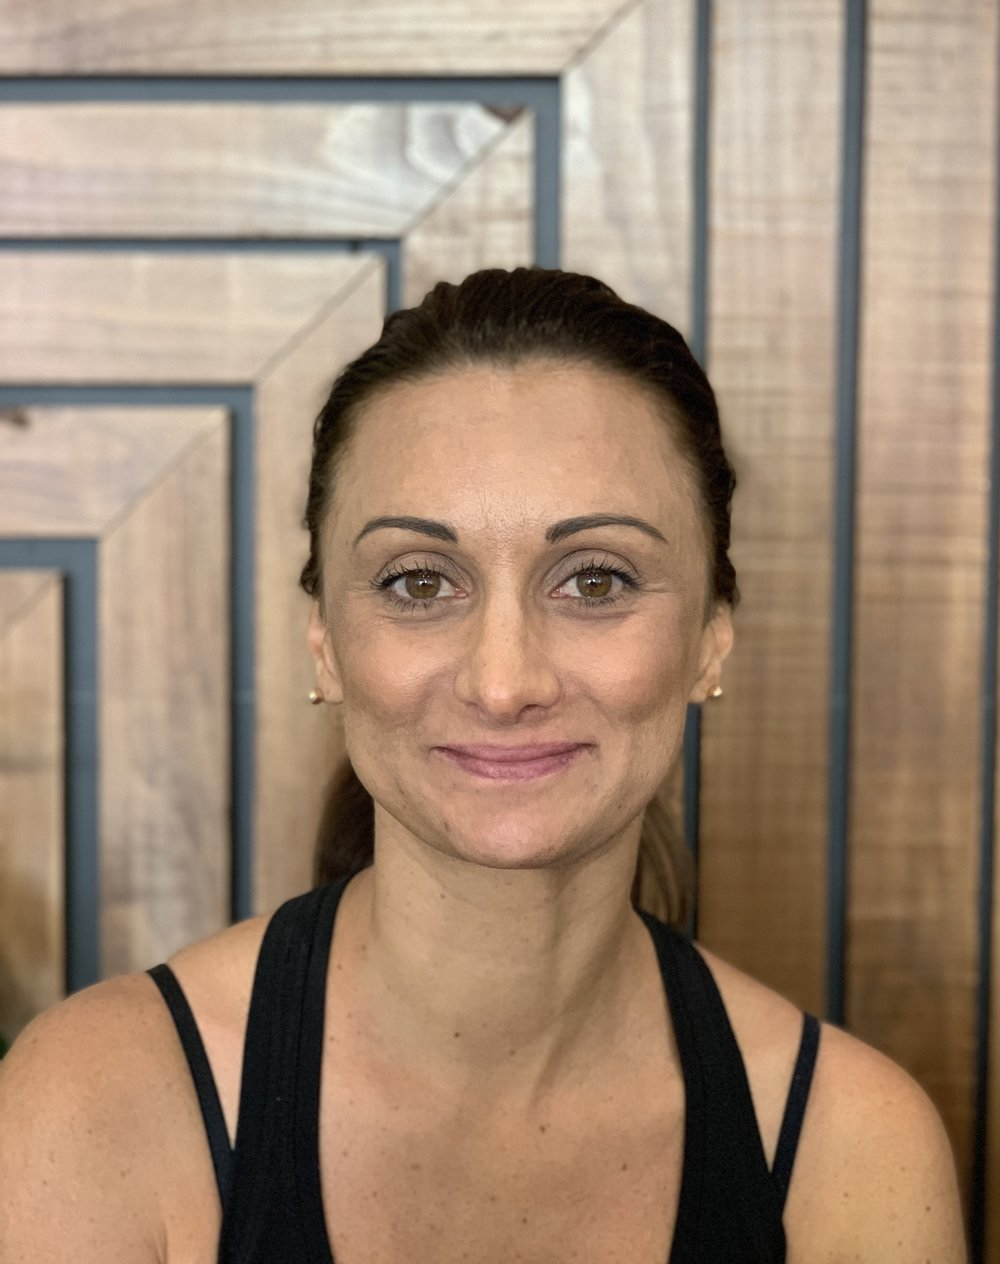 JO CARCHEDI - PILATES INSTRUCTOR